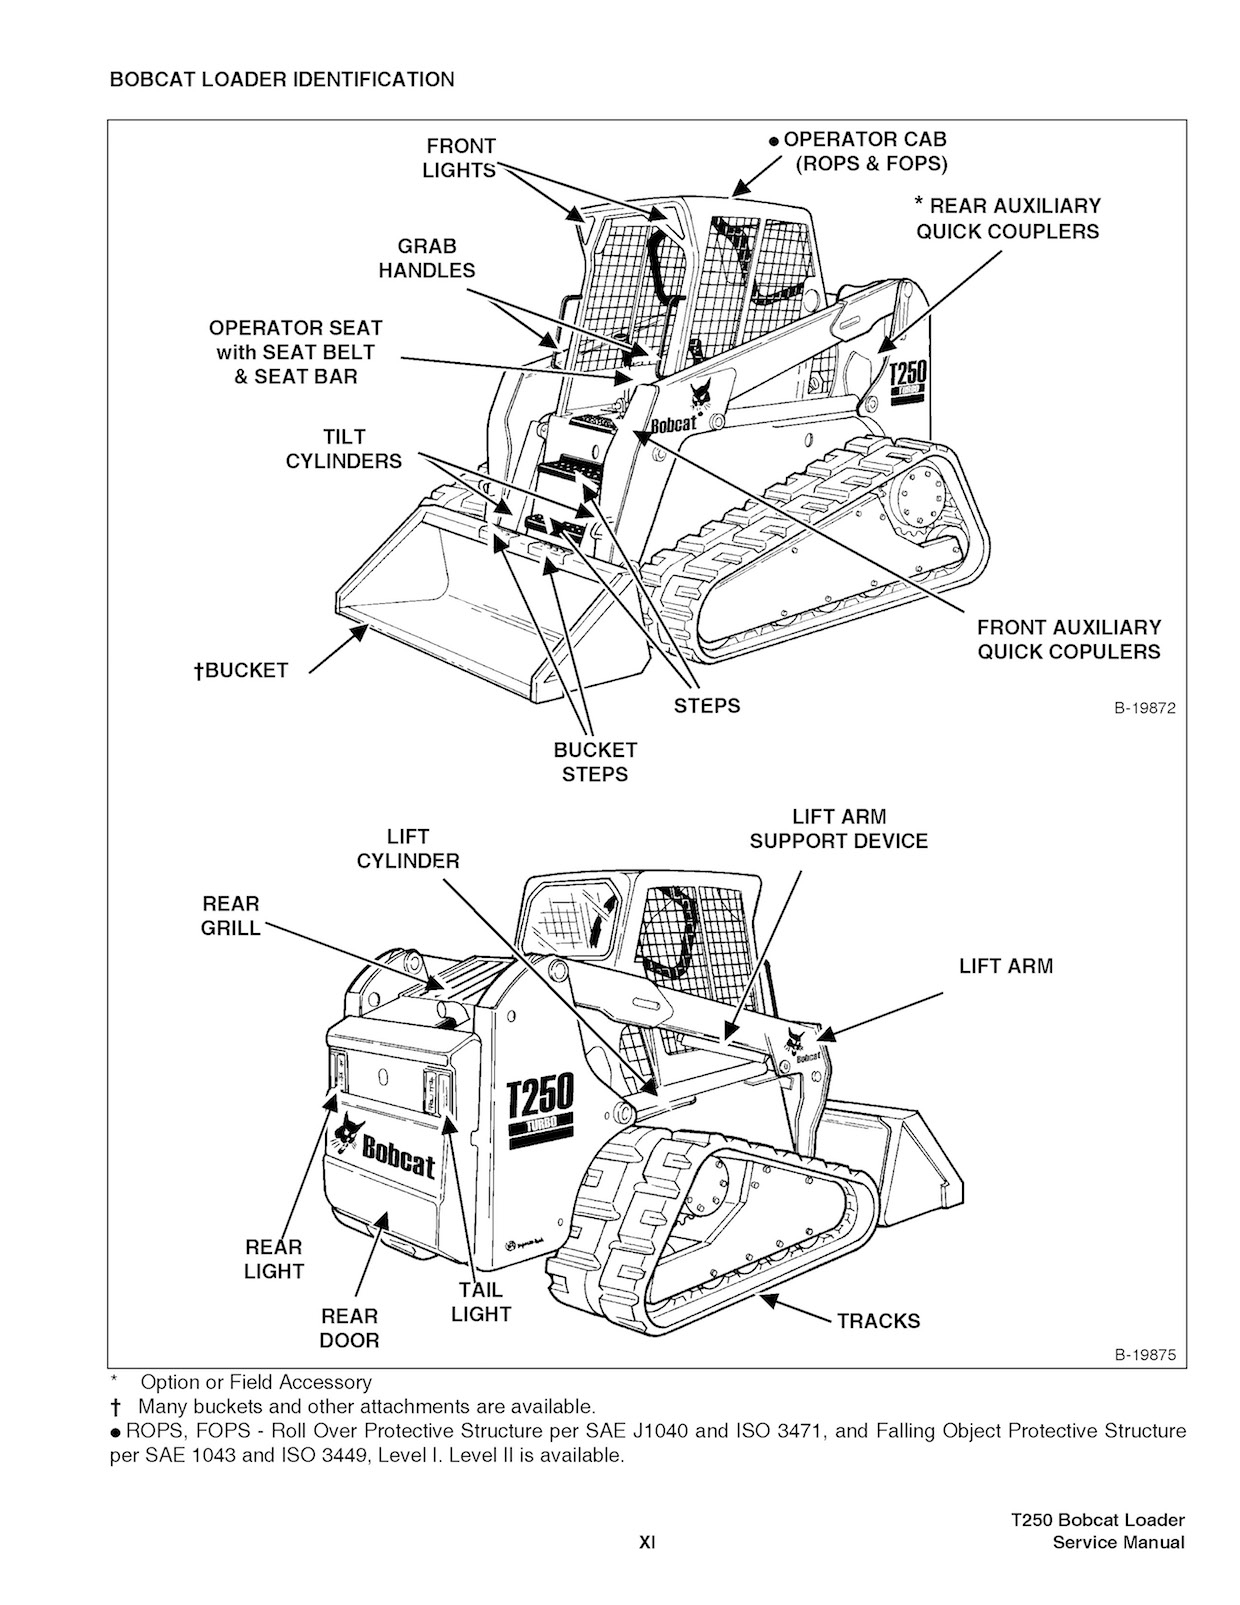 bobcat t250 parts diagram wiring diagram used bobcat t 250 parts catalog bobcat t250 parts diagram [ 1240 x 1605 Pixel ]